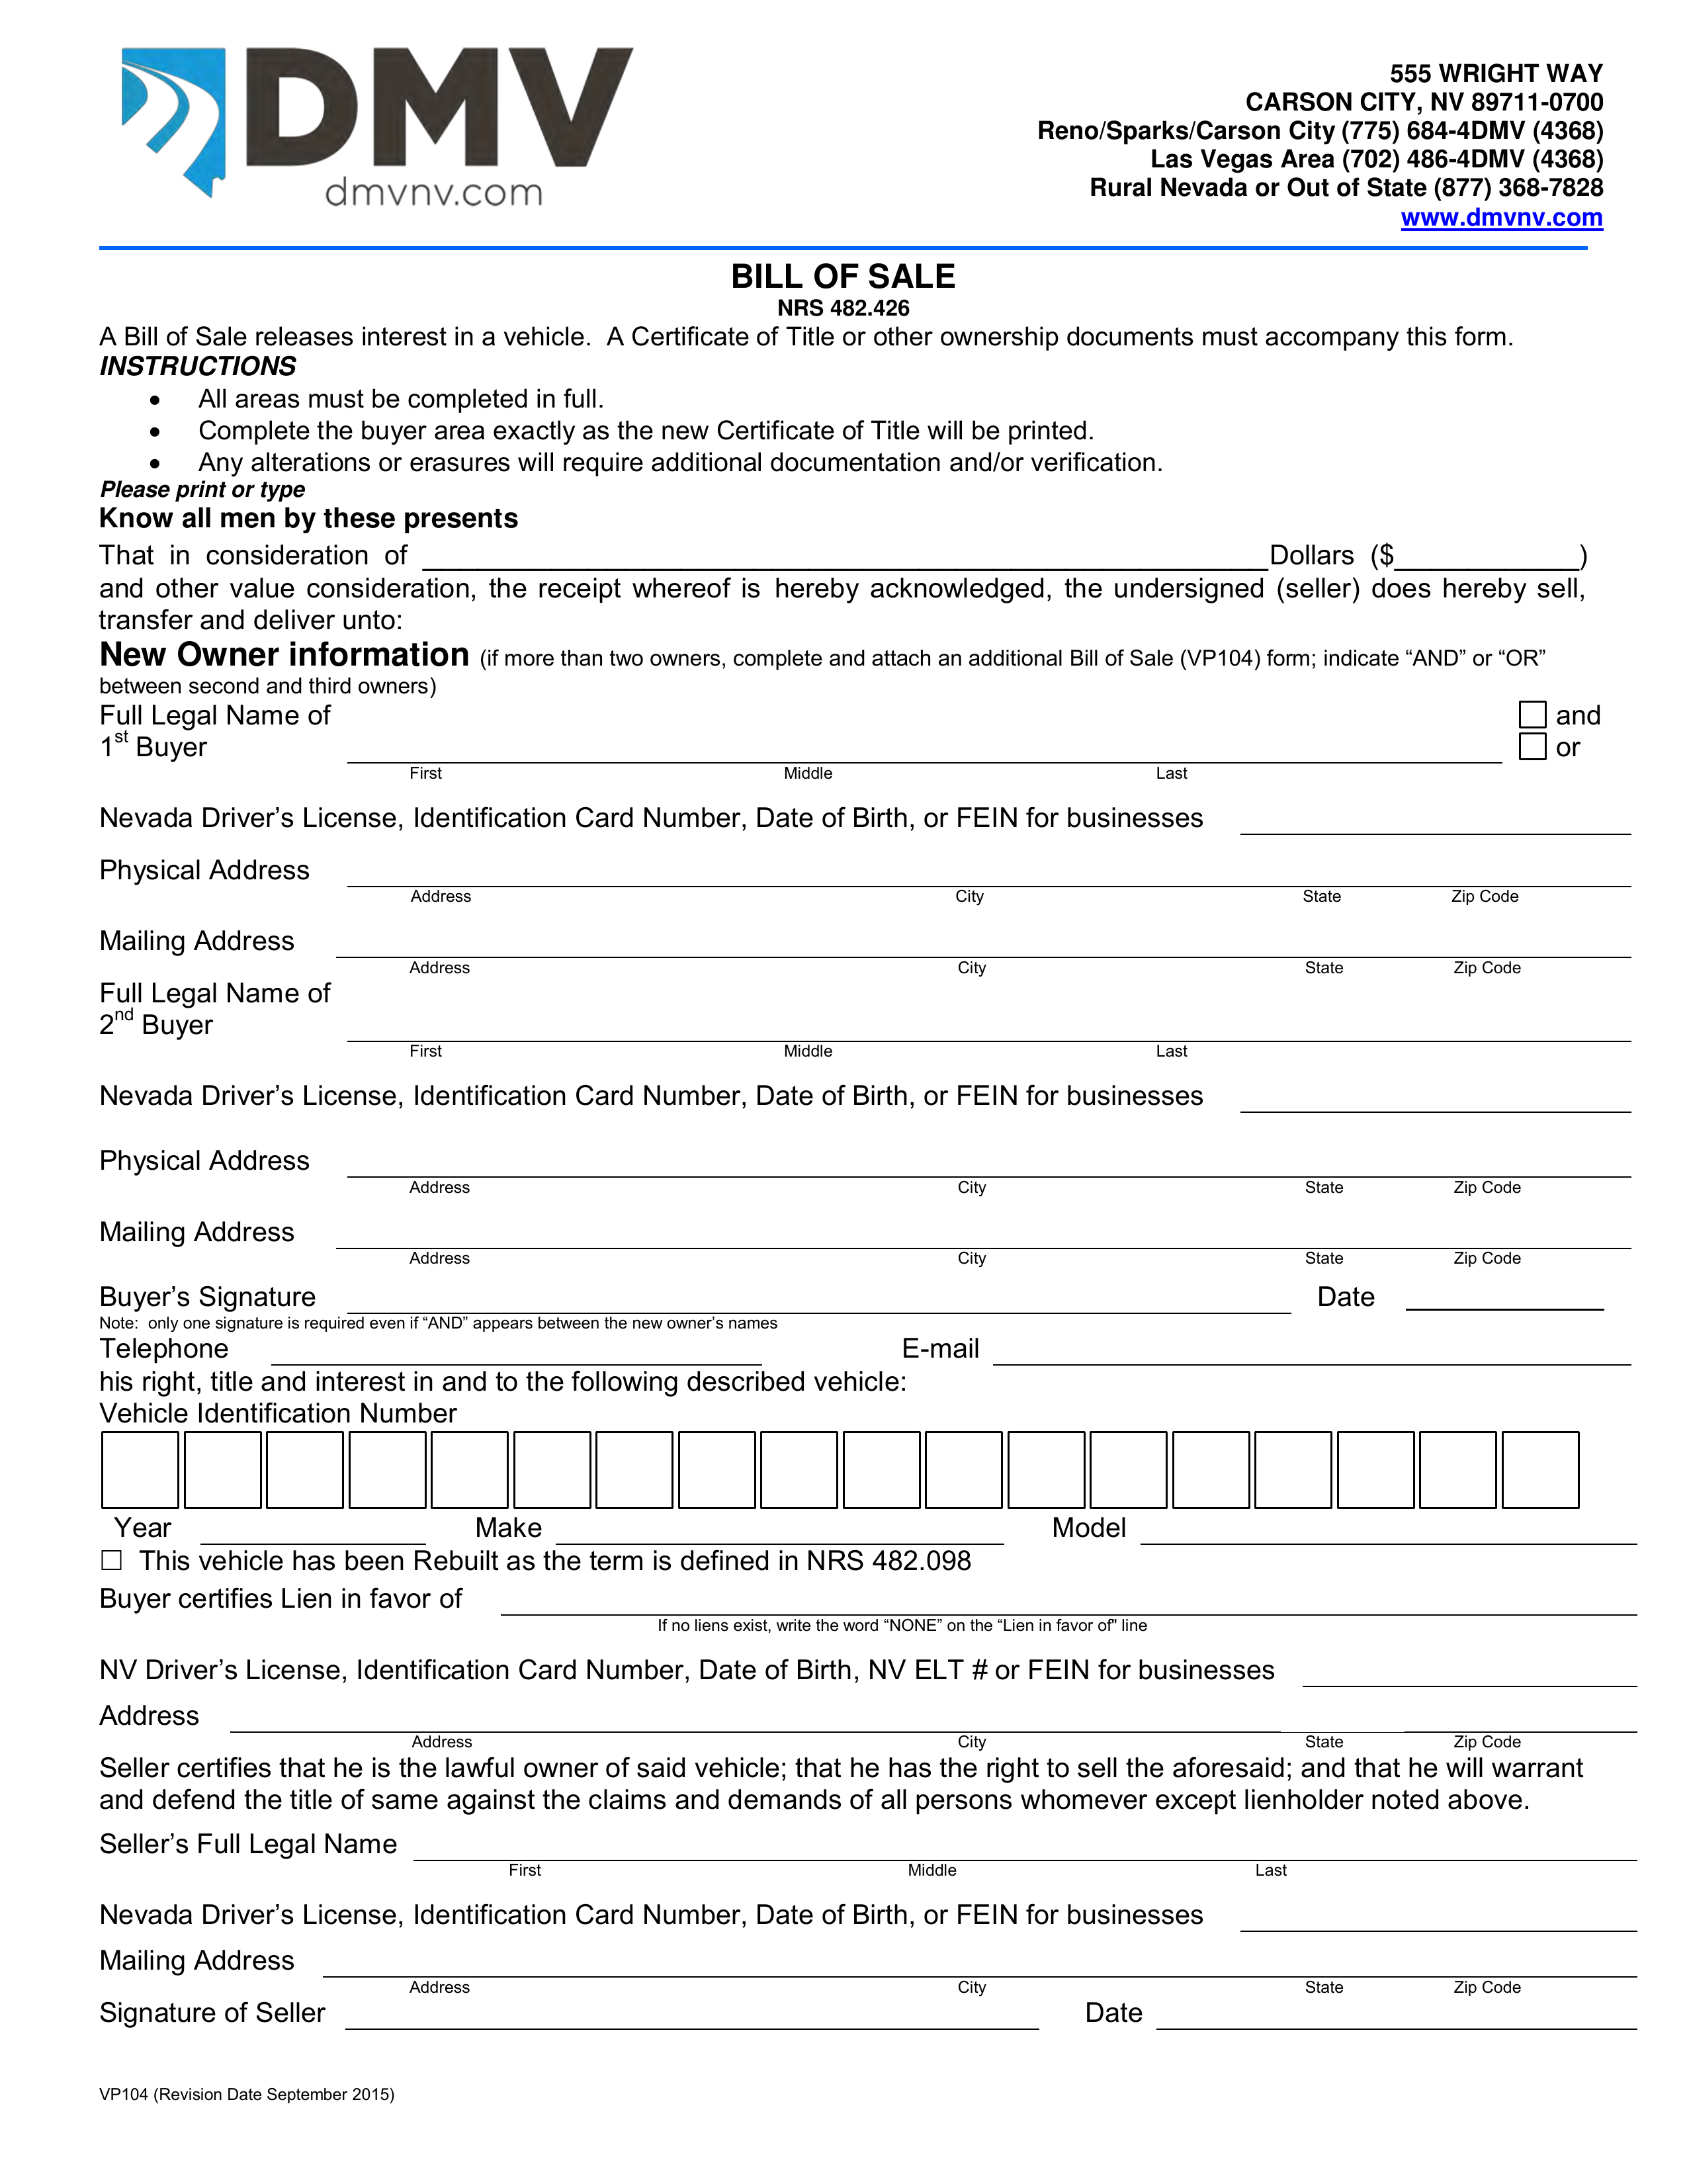 Nevada Vehicle Bill Of Sale | Form Vp-104 | Eforms – Free